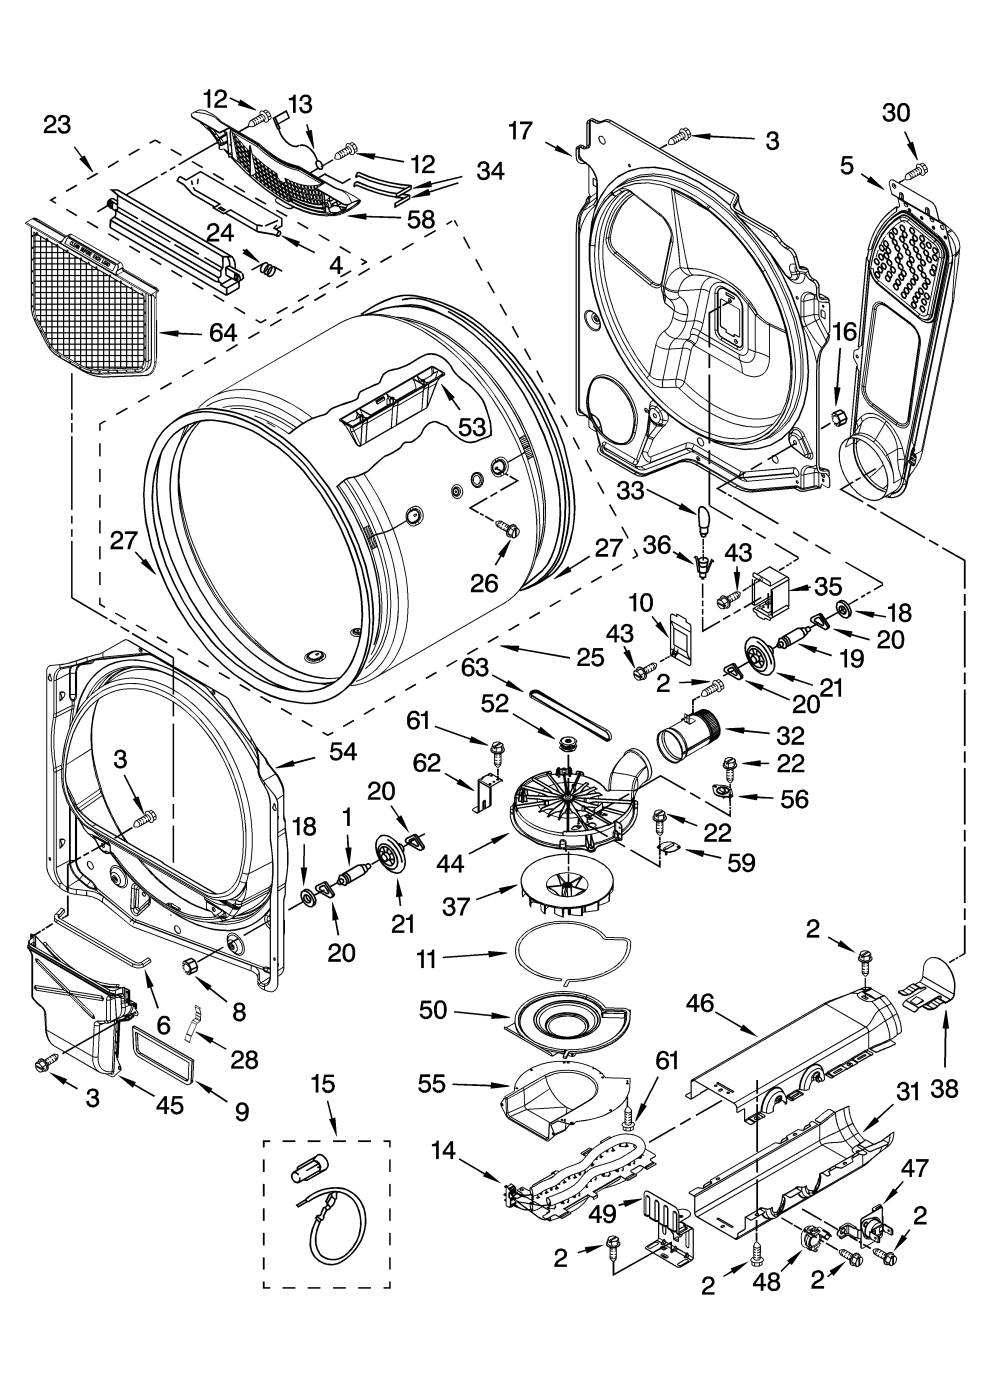 medium resolution of kenmore elite model 11067052600 residential dryer genuine parts rh searspartsdirect com kenmore 110 dryer parts diagram